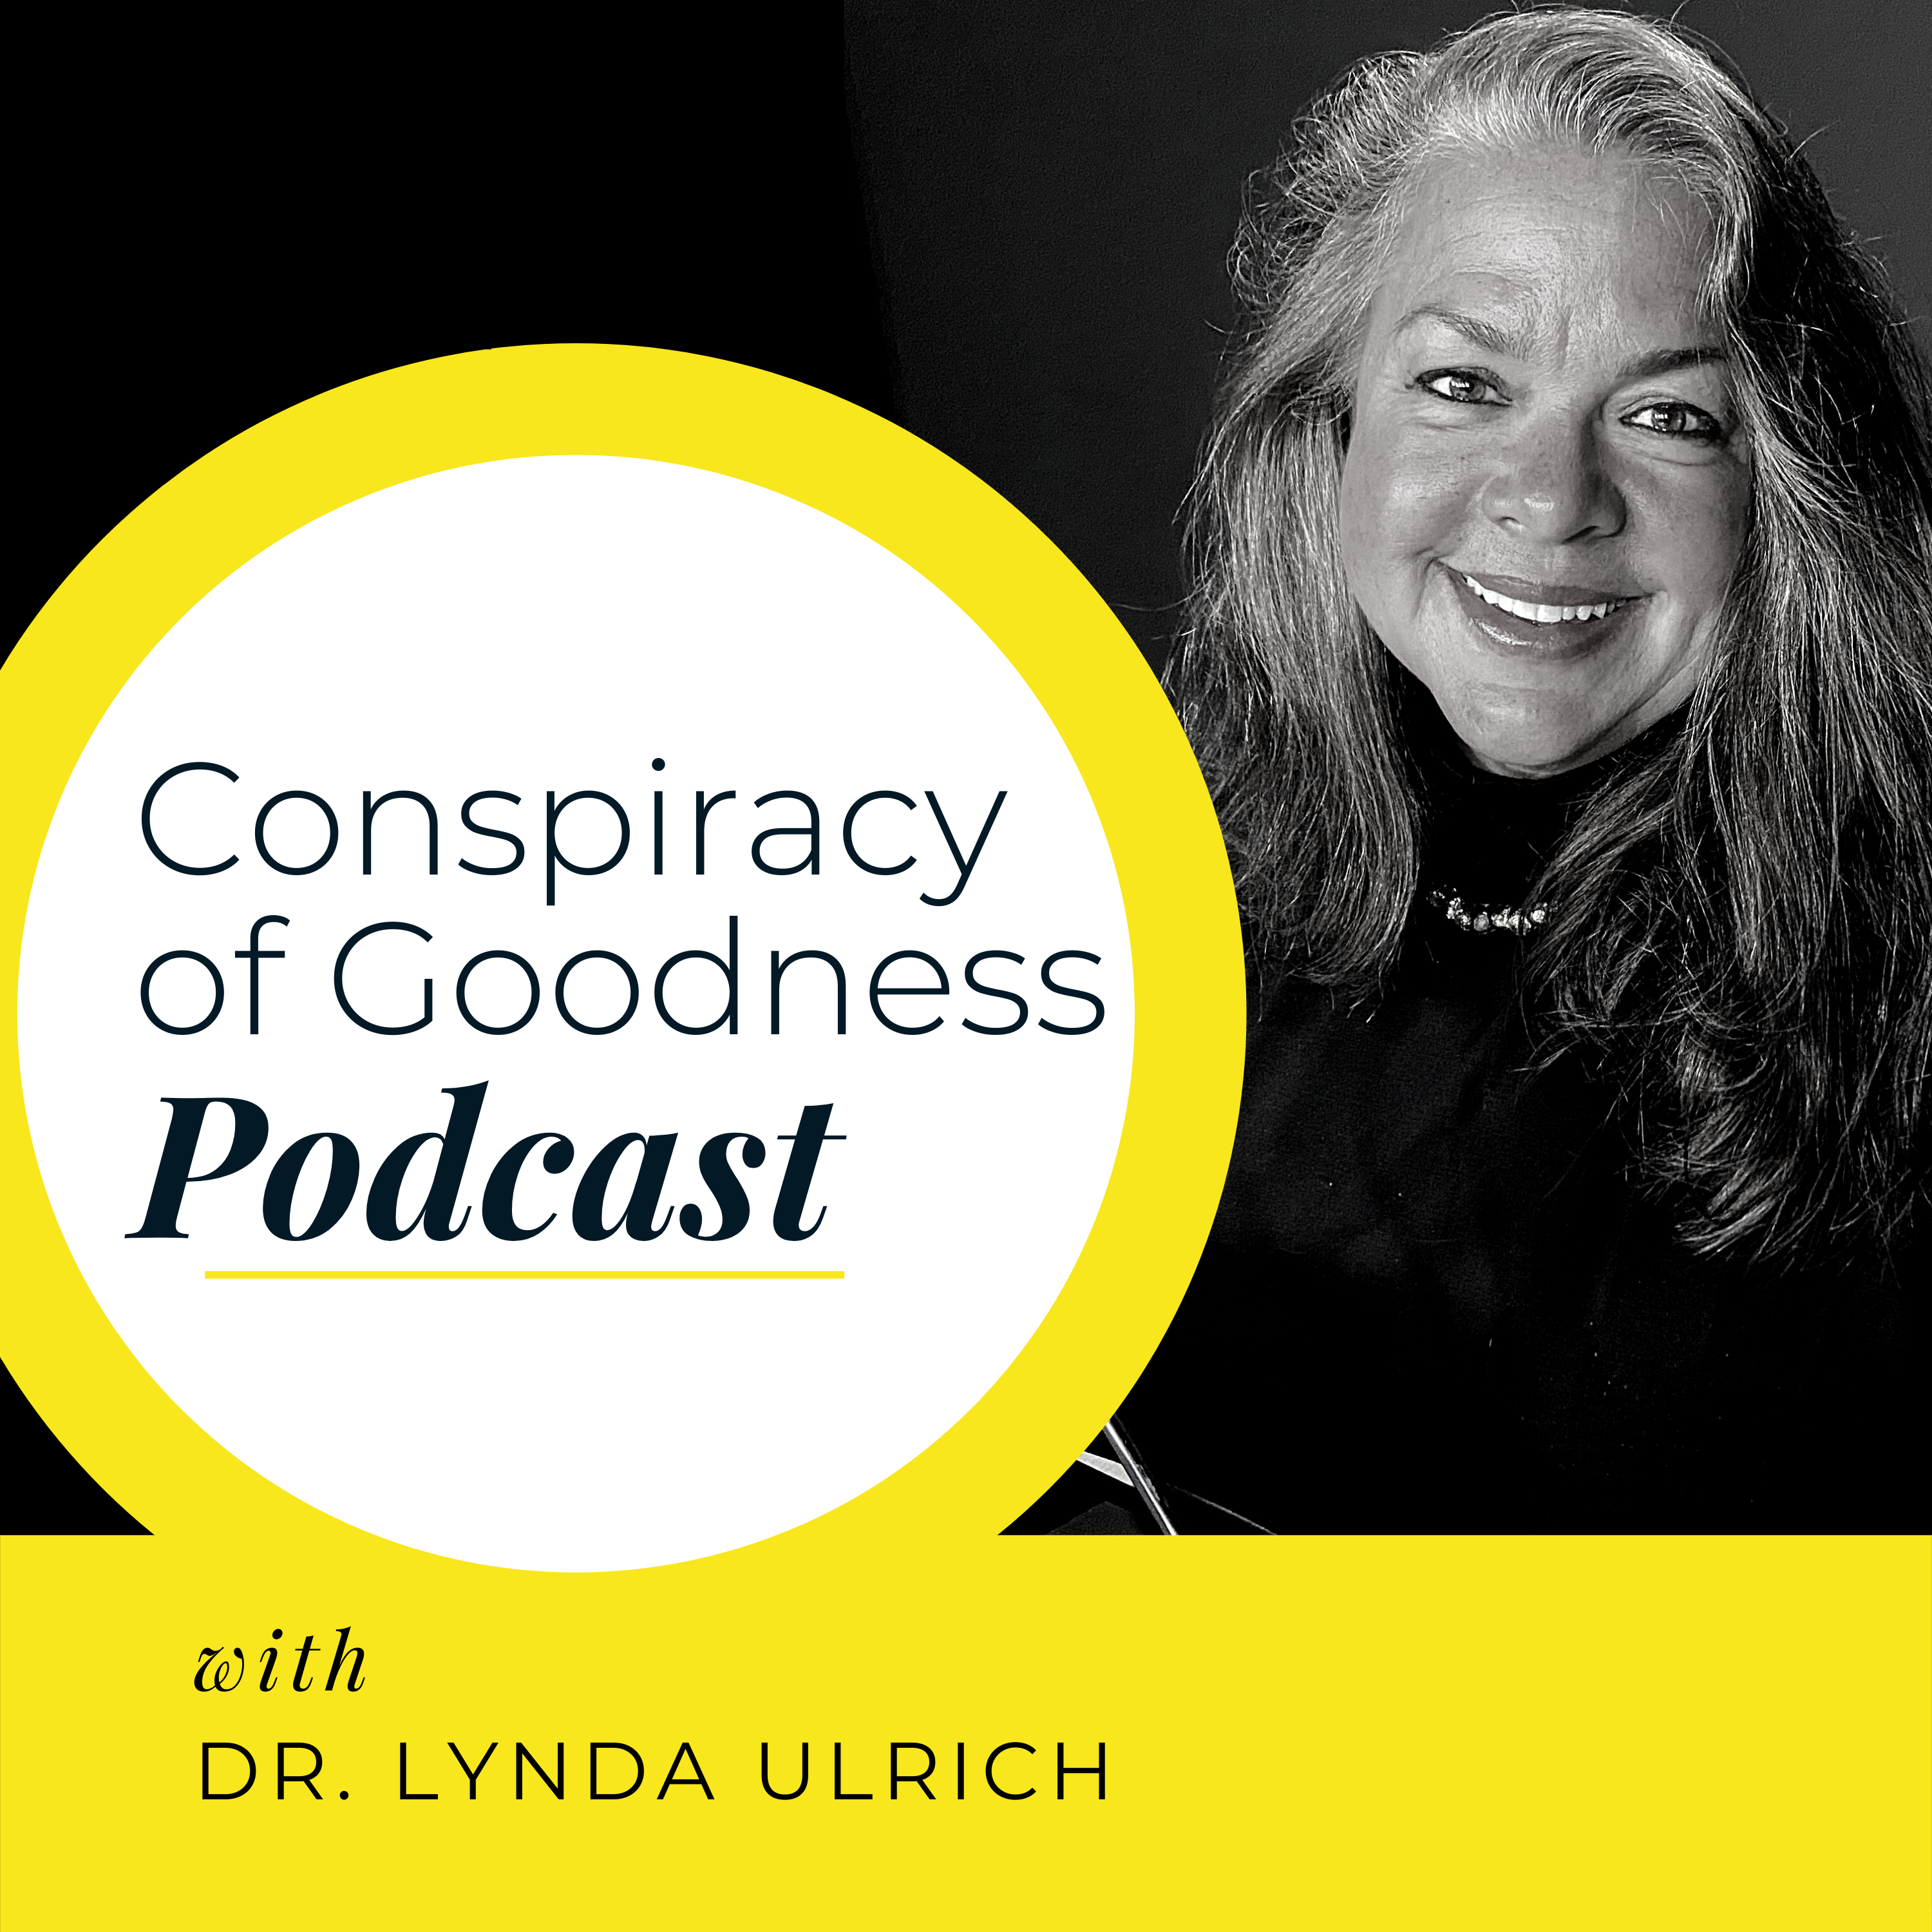 Artwork for 3 Ways to Find Your Purpose with Liesl Ulrich-Verderber